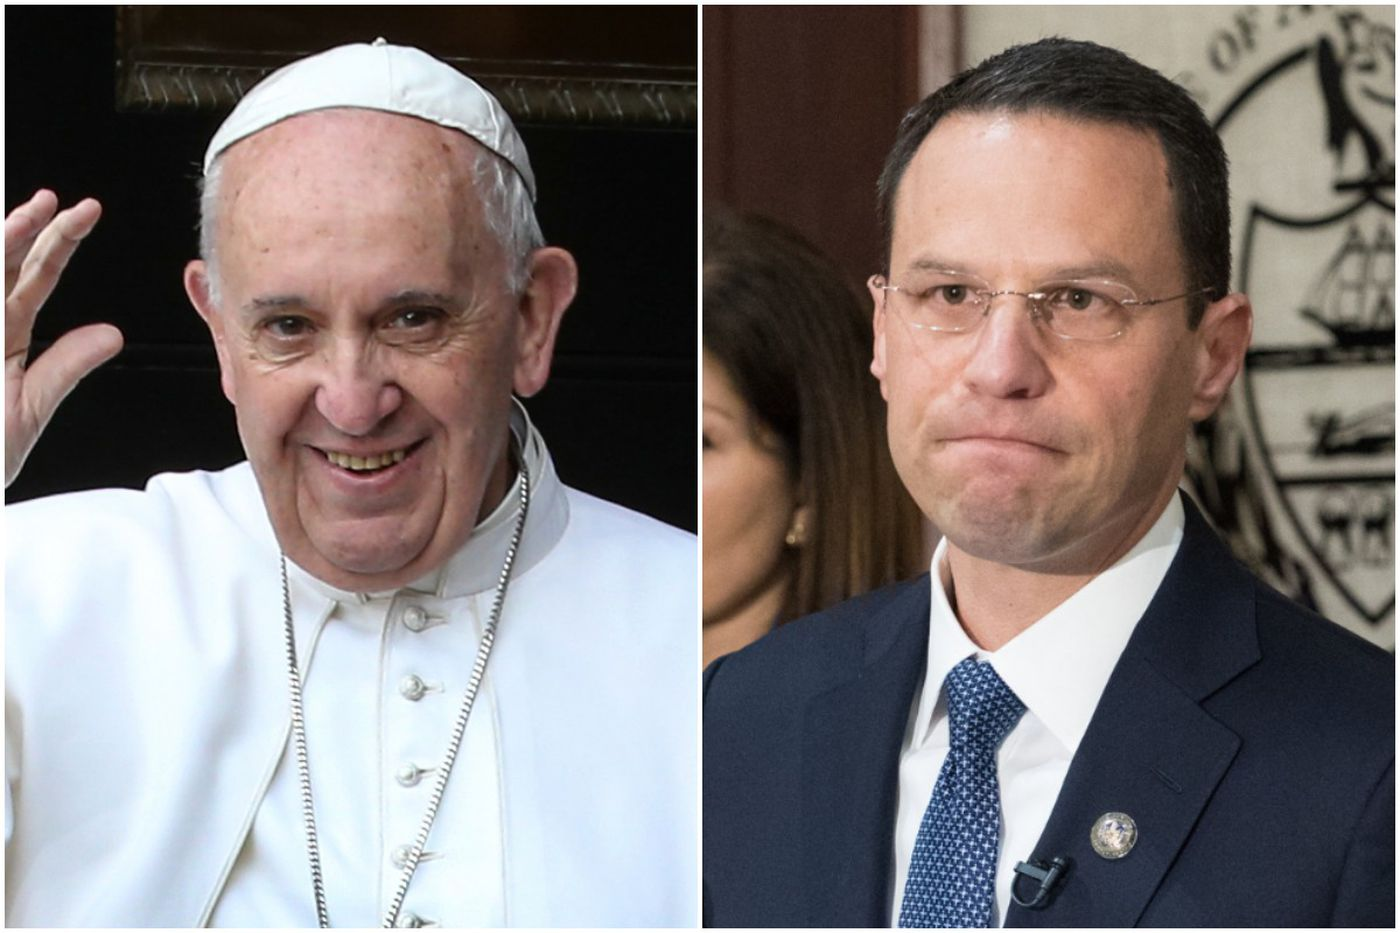 AG Josh Shapiro asks Pope Francis for help in Pa. clergy sex abuse case